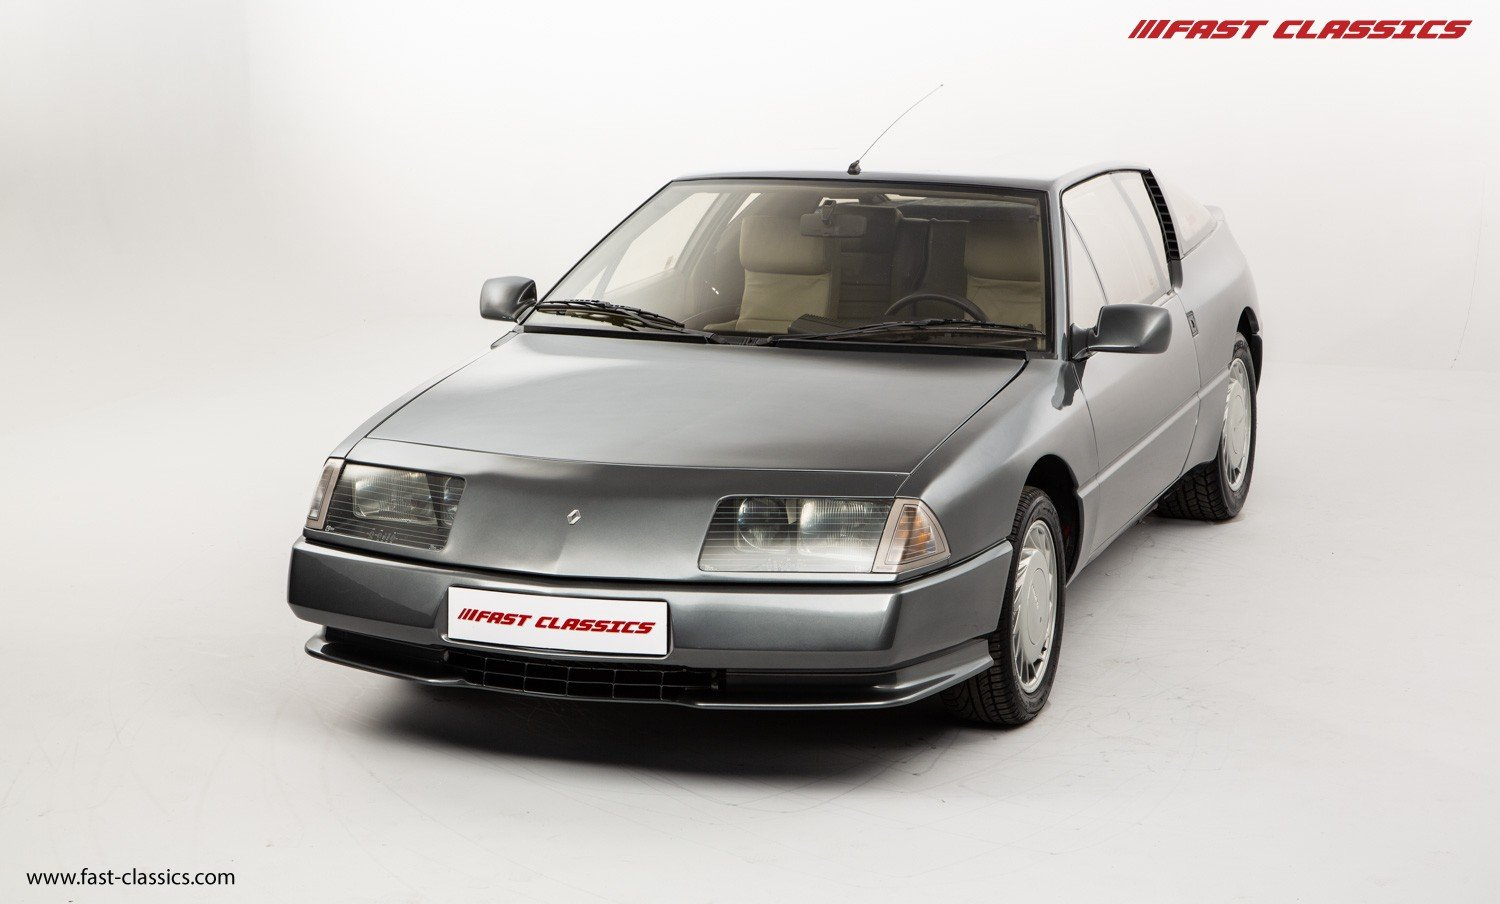 1987 RENAULT ALPINE GTA V6 TURBO // 44K MILES // MECHANICAL RESTO For Sale (picture 2 of 6)